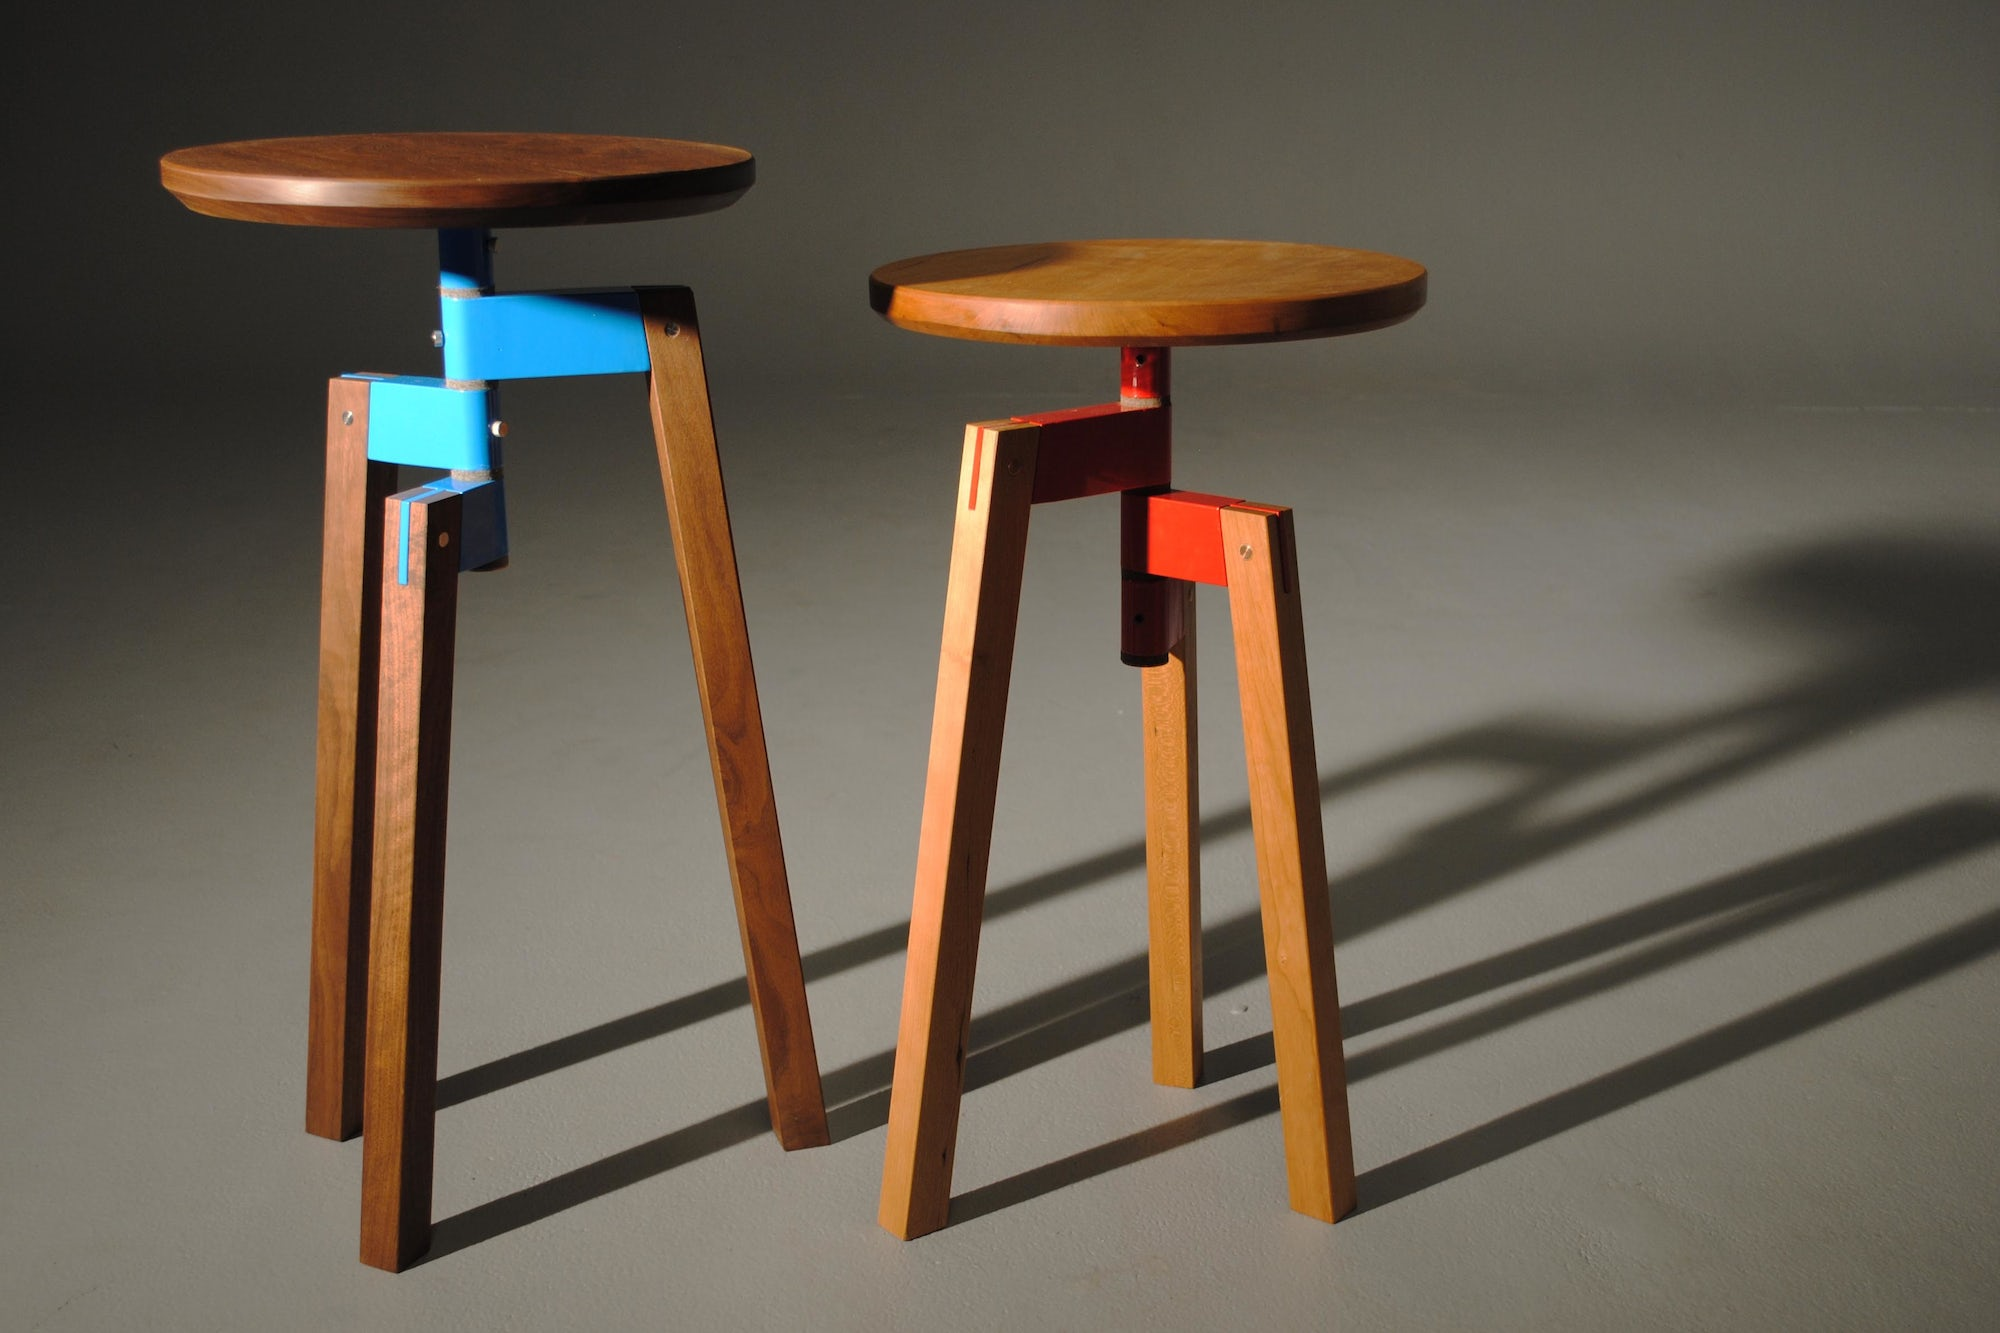 Collapsible stools